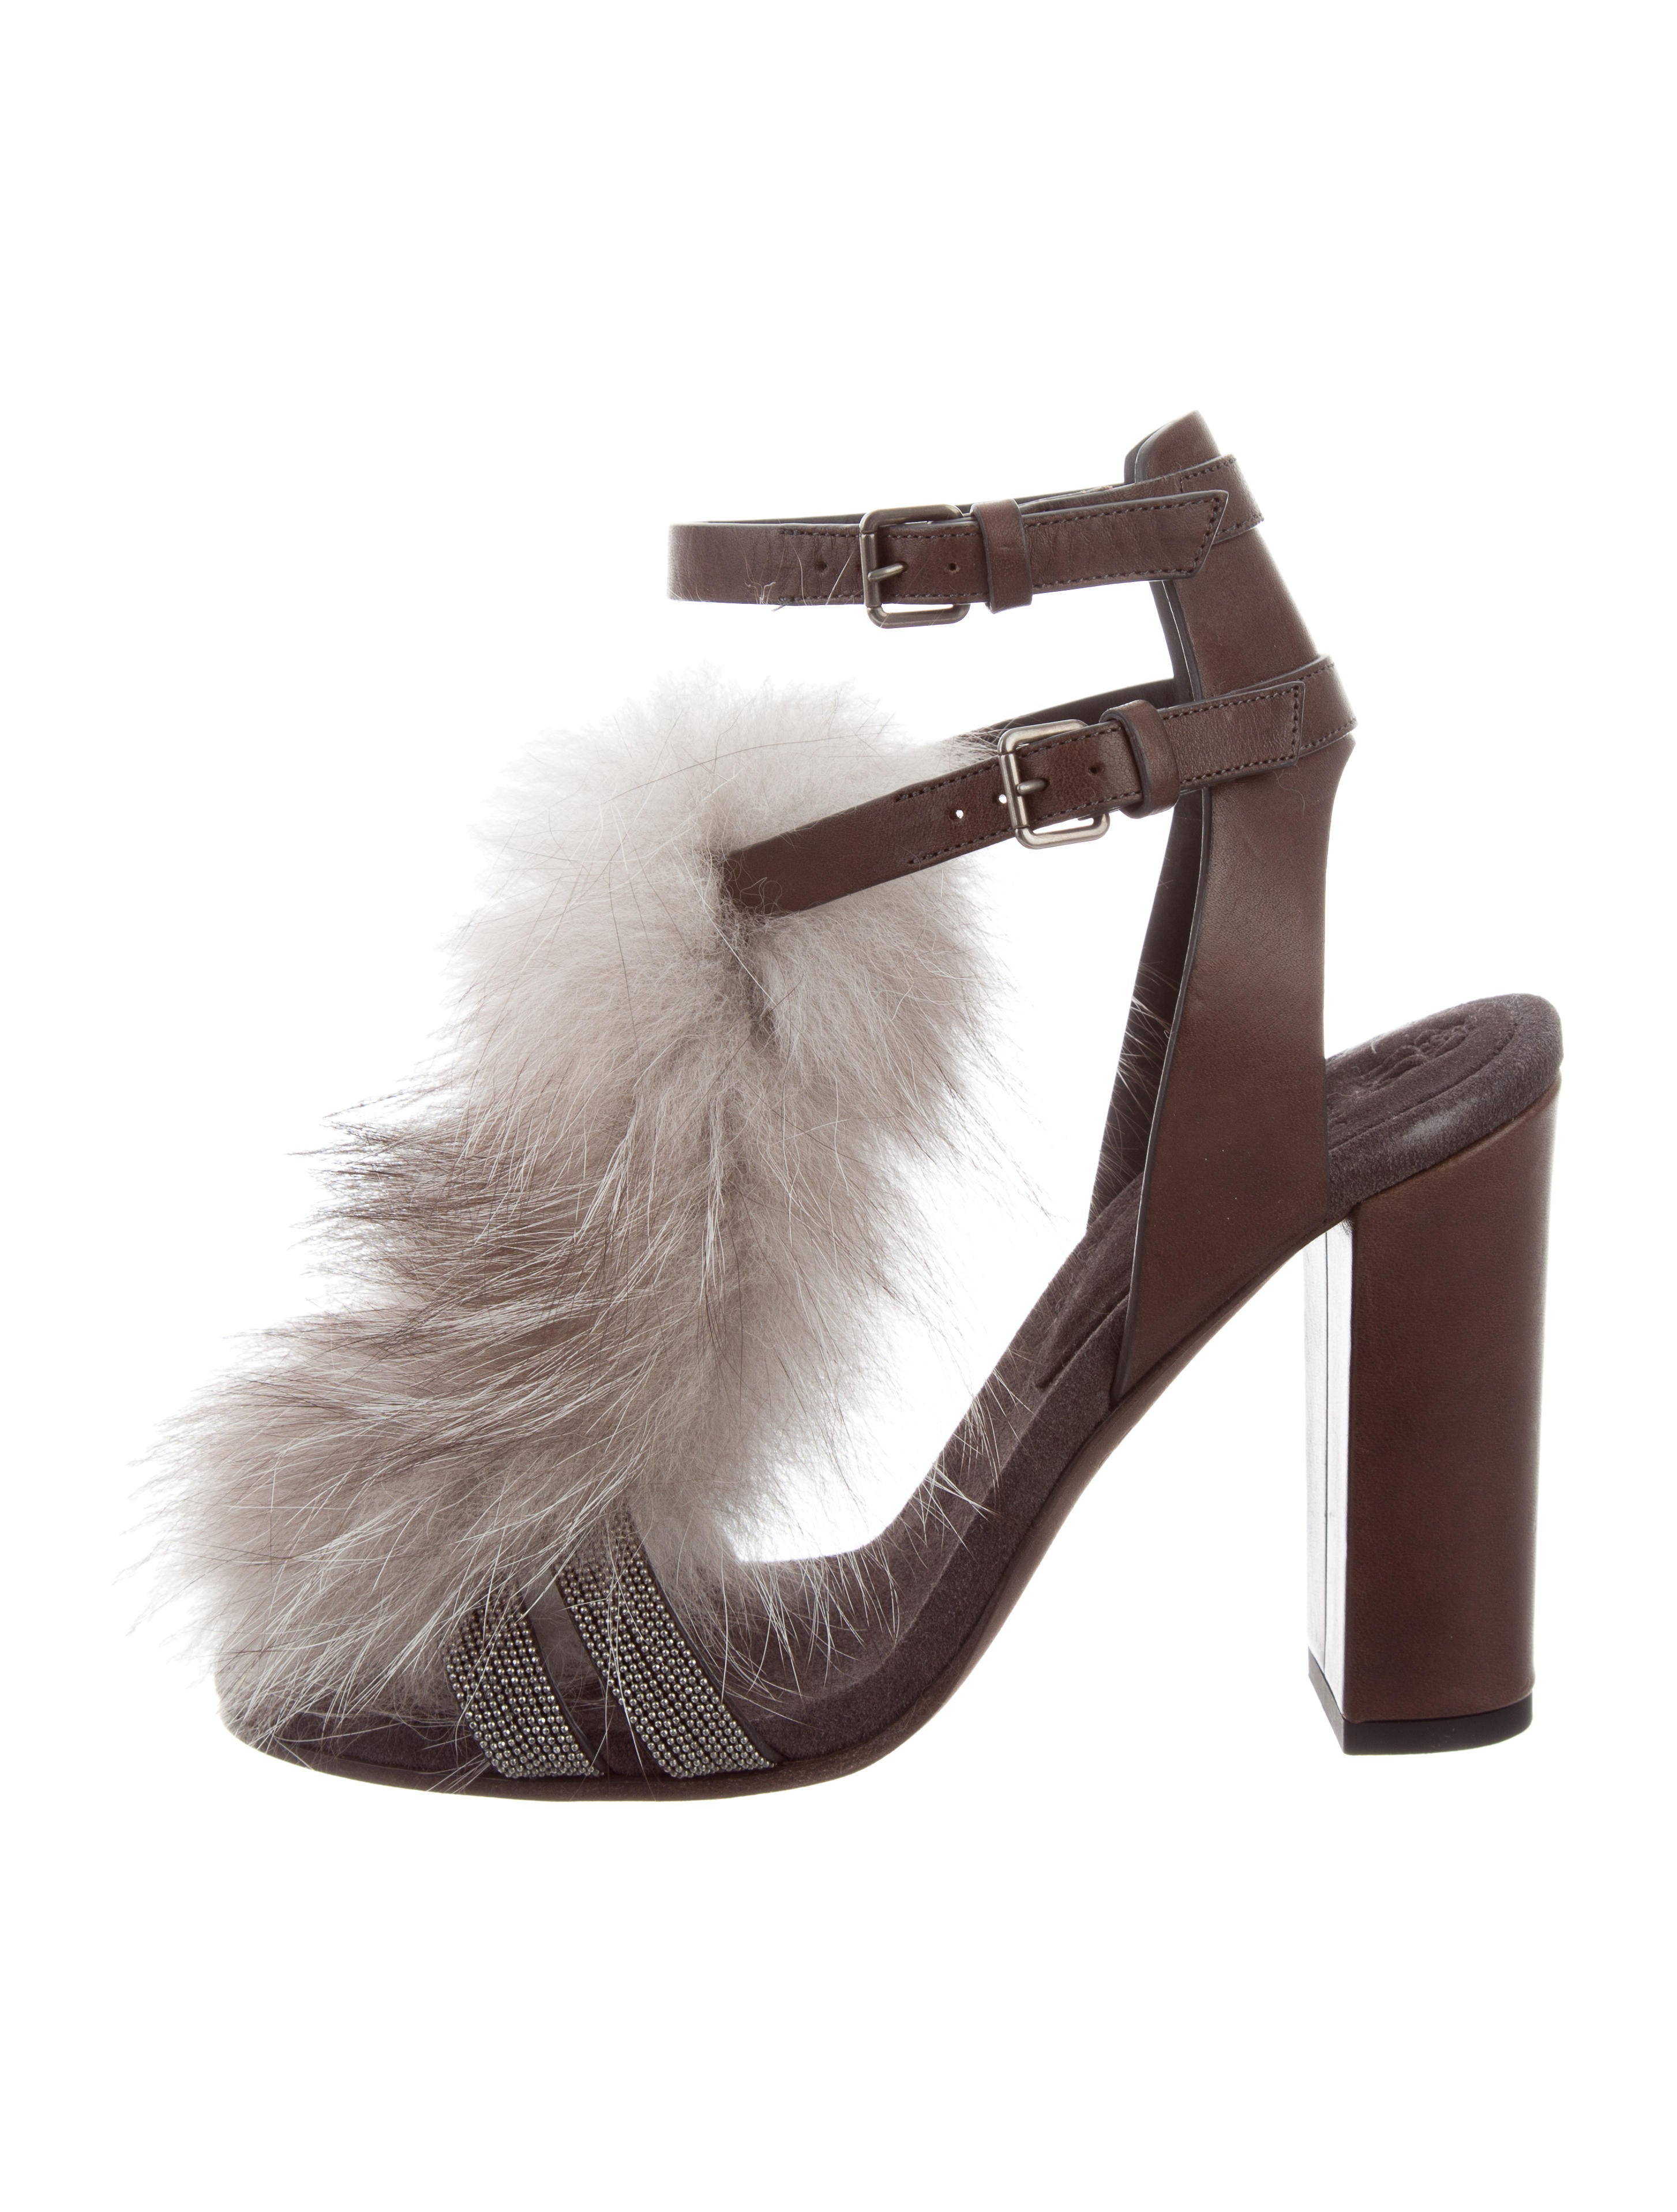 cheap 100% original outlet get authentic Brunello Cucinelli Monili Mink Fur-Accented Sandals buy cheap pre order cheap nicekicks 2015 cheap online VP4qkI